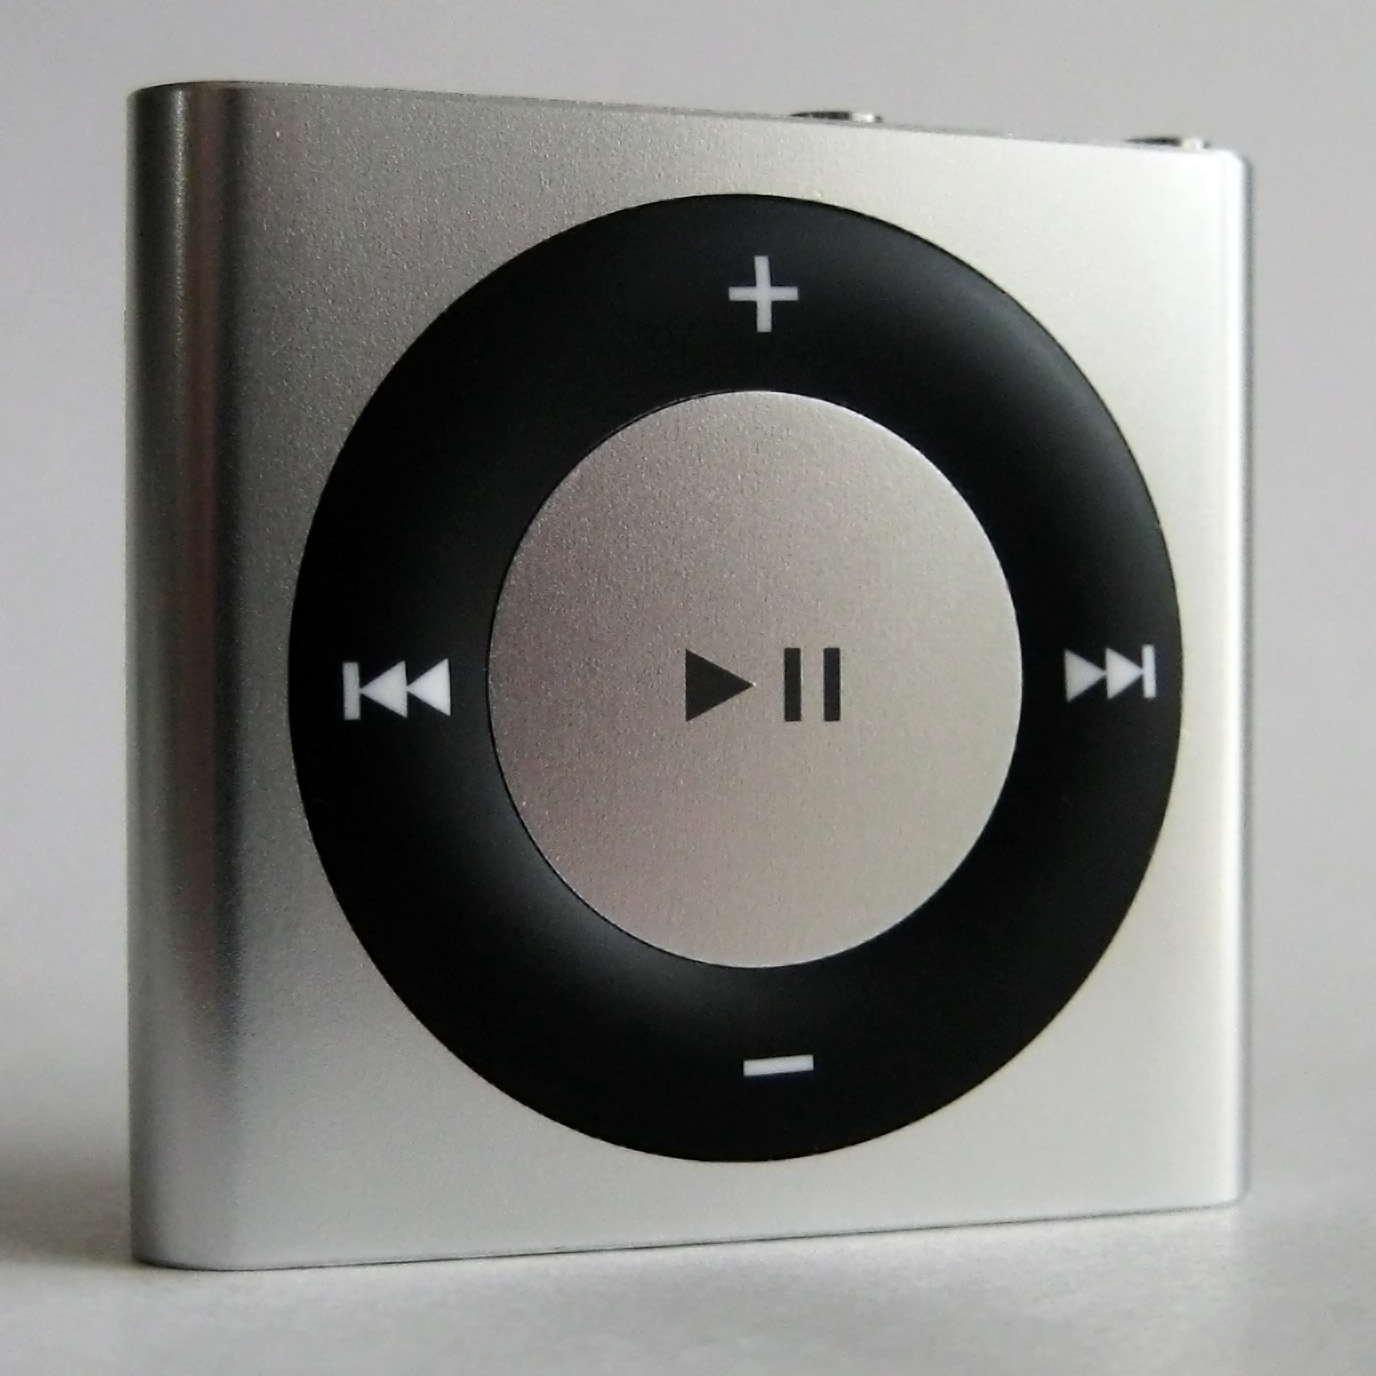 how to use ipod reset utility